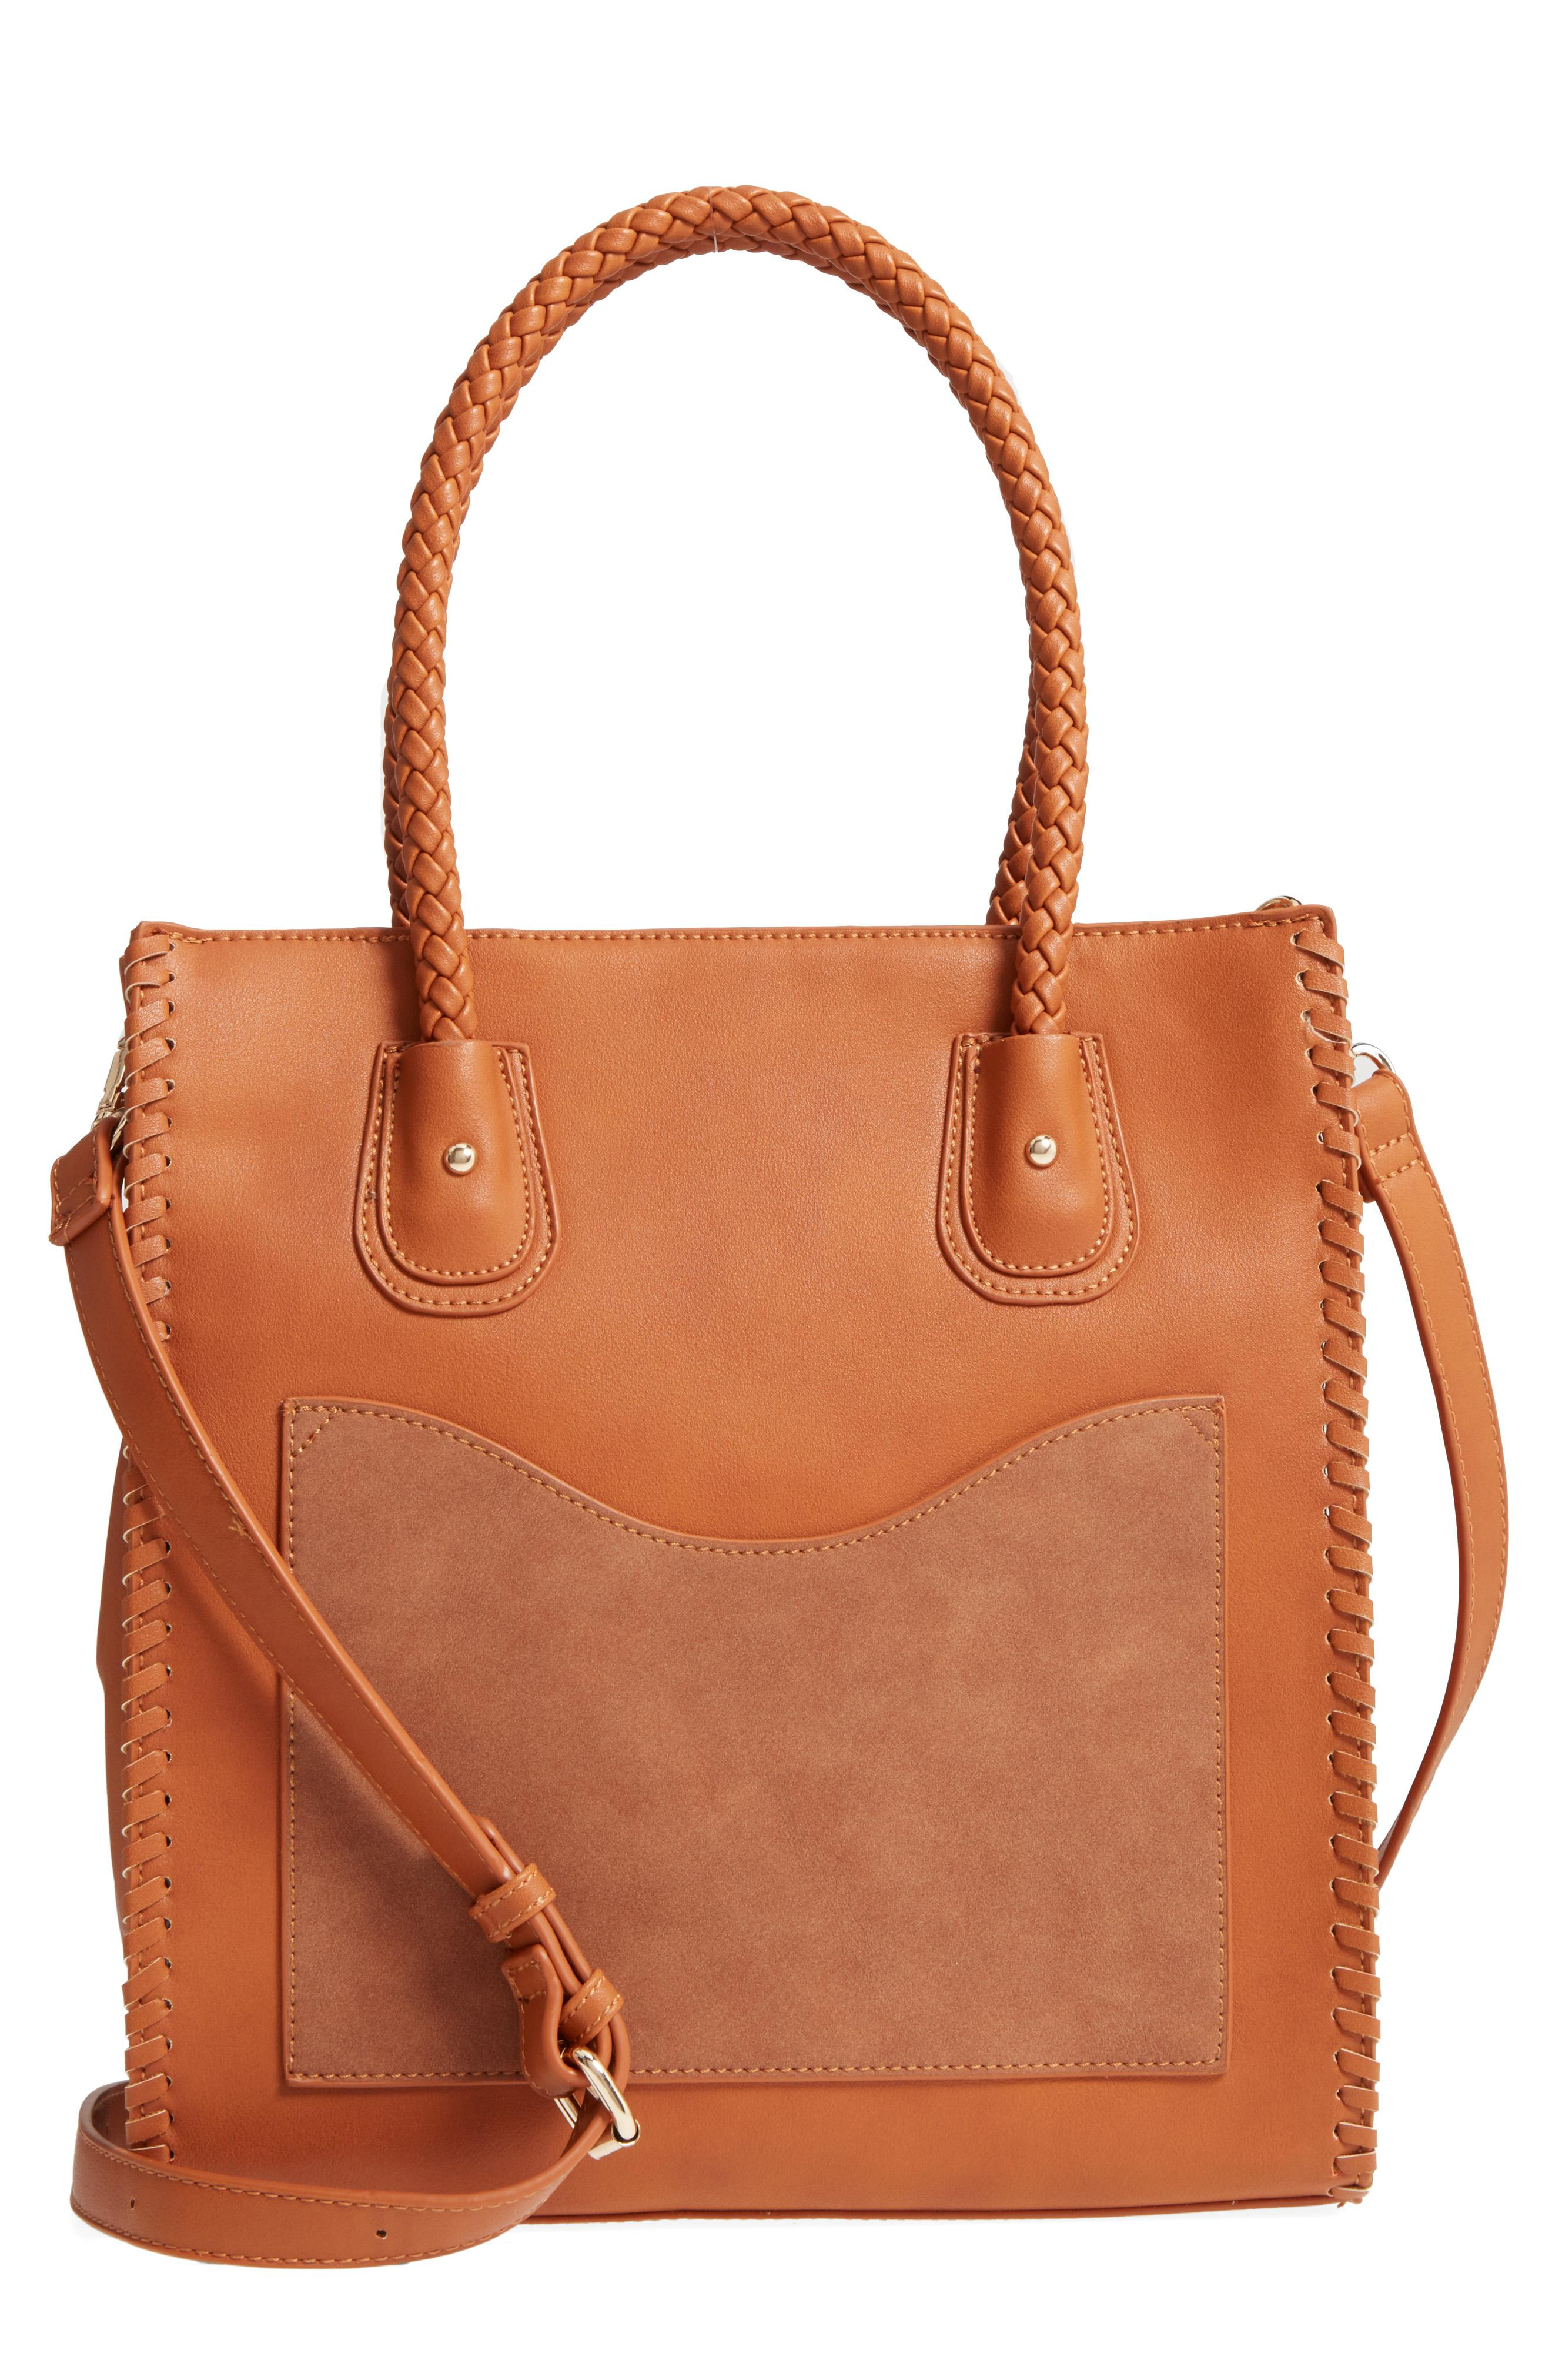 Emperia Whipstitch Faux Leather Tote from Nordstrom // Price: $49.00 //{&amp;nbsp;}(Image: Nordstrom // Nordstrom.com){&amp;nbsp;}<p></p>